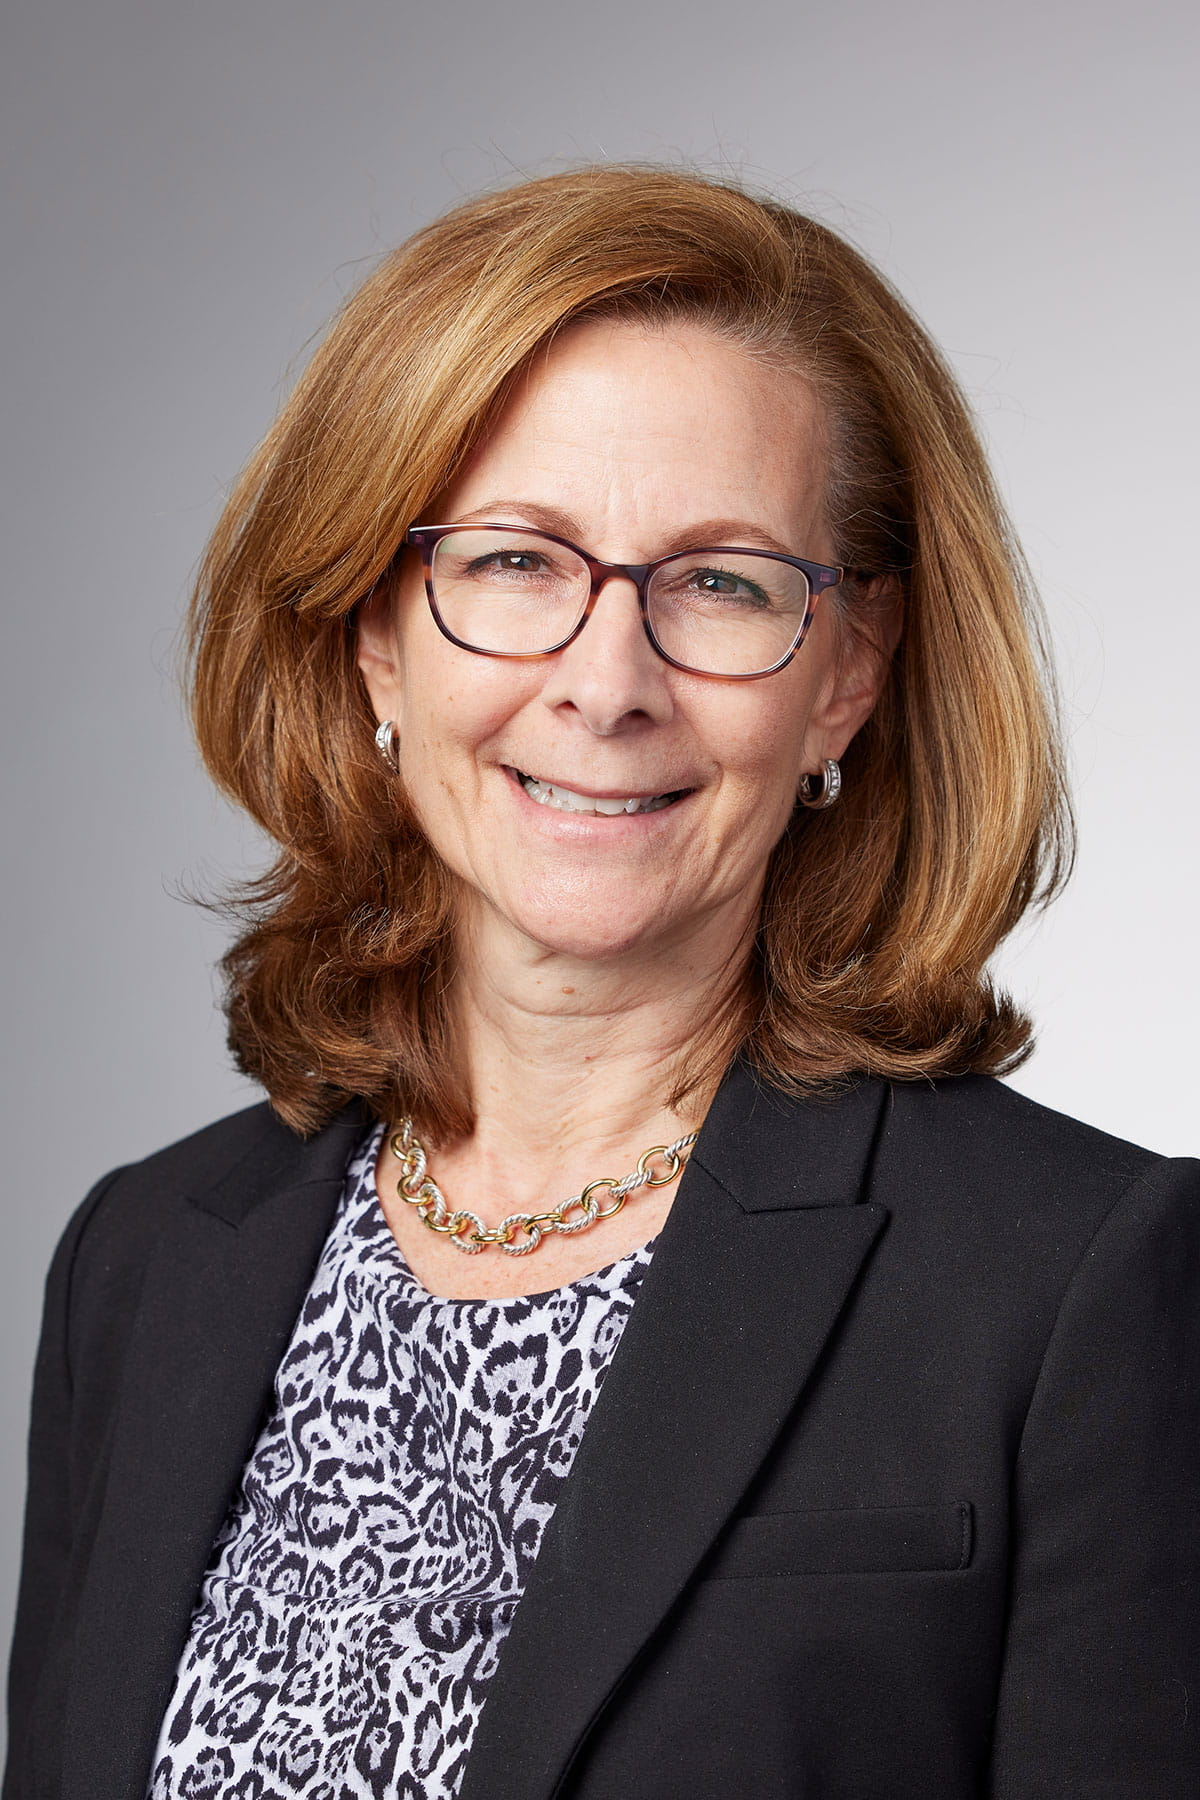 A photo of Patricia Manning-Courtney.